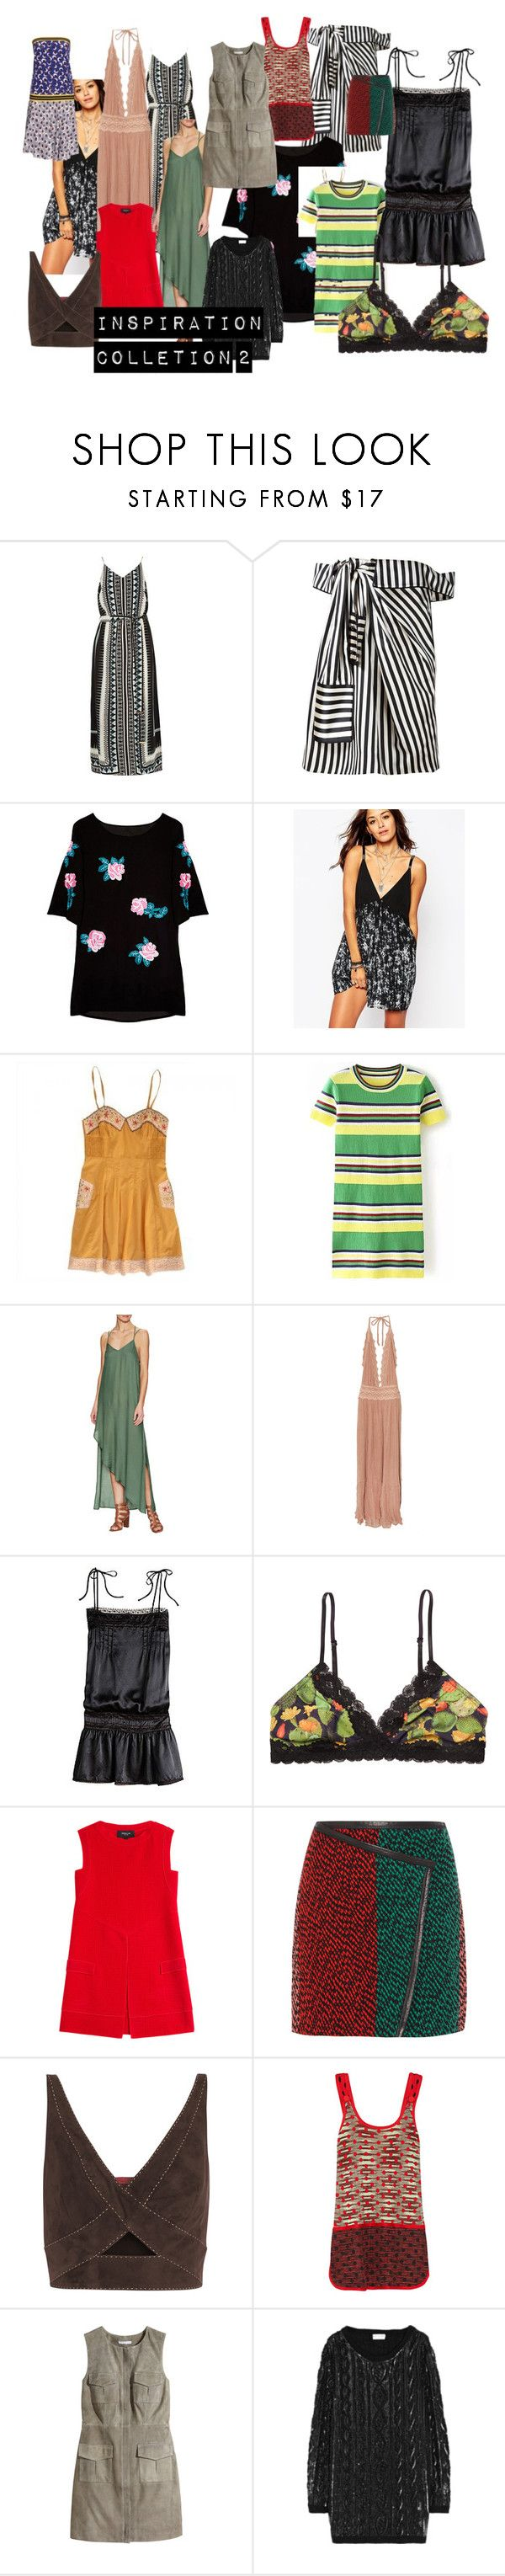 """inspiration colletion 2"" by anaunderground on Polyvore featuring River Island, Monse, Religion Clothing, Free People, Jens Pirate Booty, Juicy Couture, Monki, Derek Lam, Fendi e Tamara Mellon"